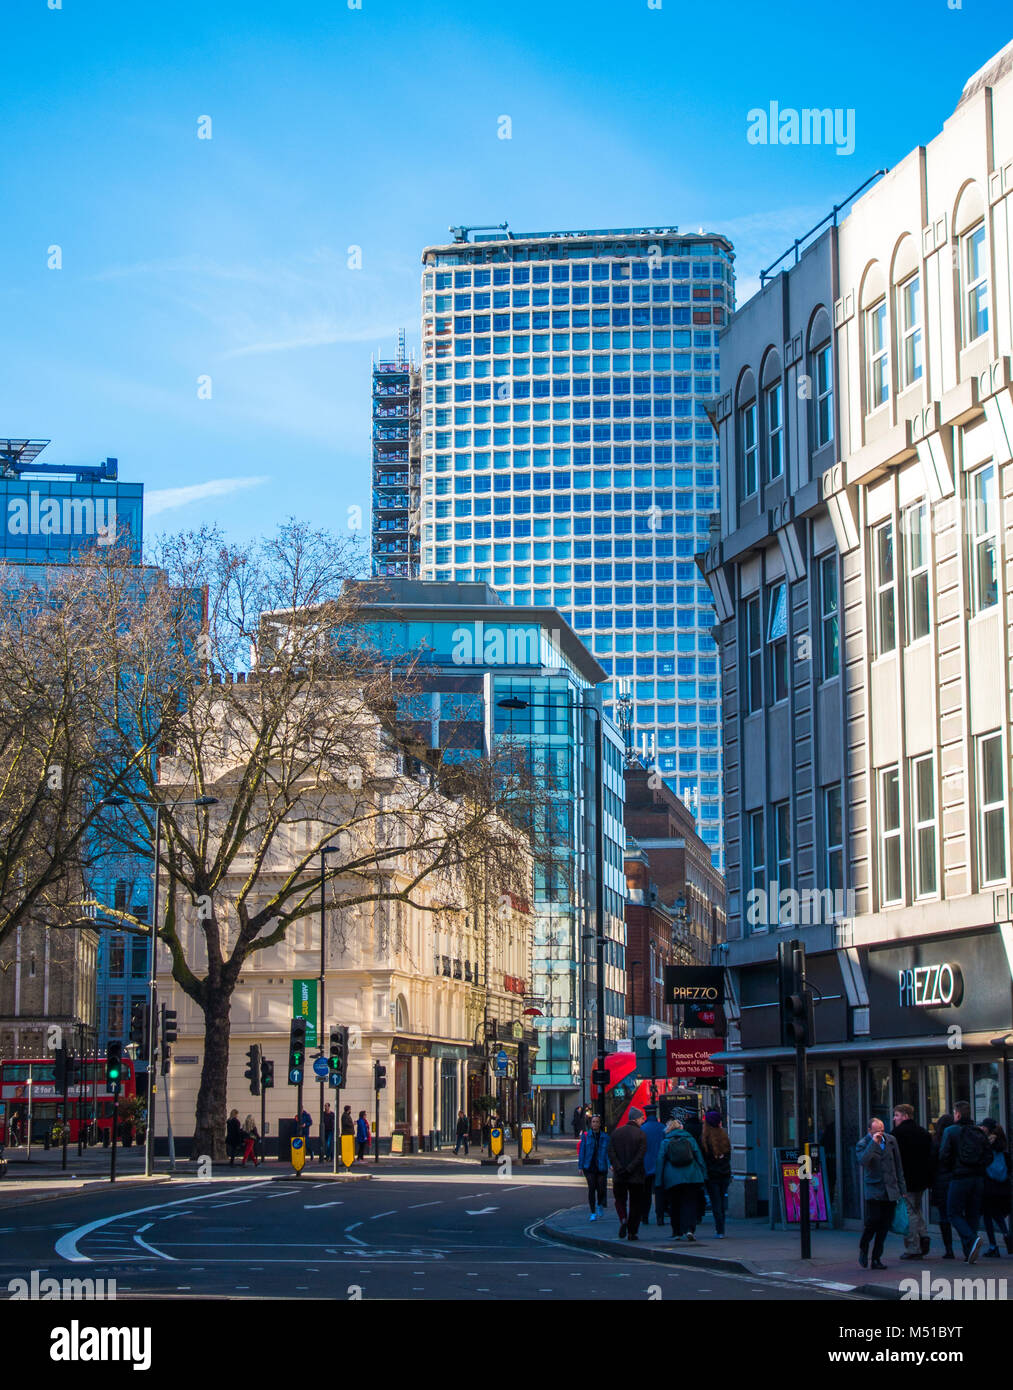 Striking mix of old and new architecture on busy New Oxford Street, with people wrapped up in warm winter clothing. - Stock Image